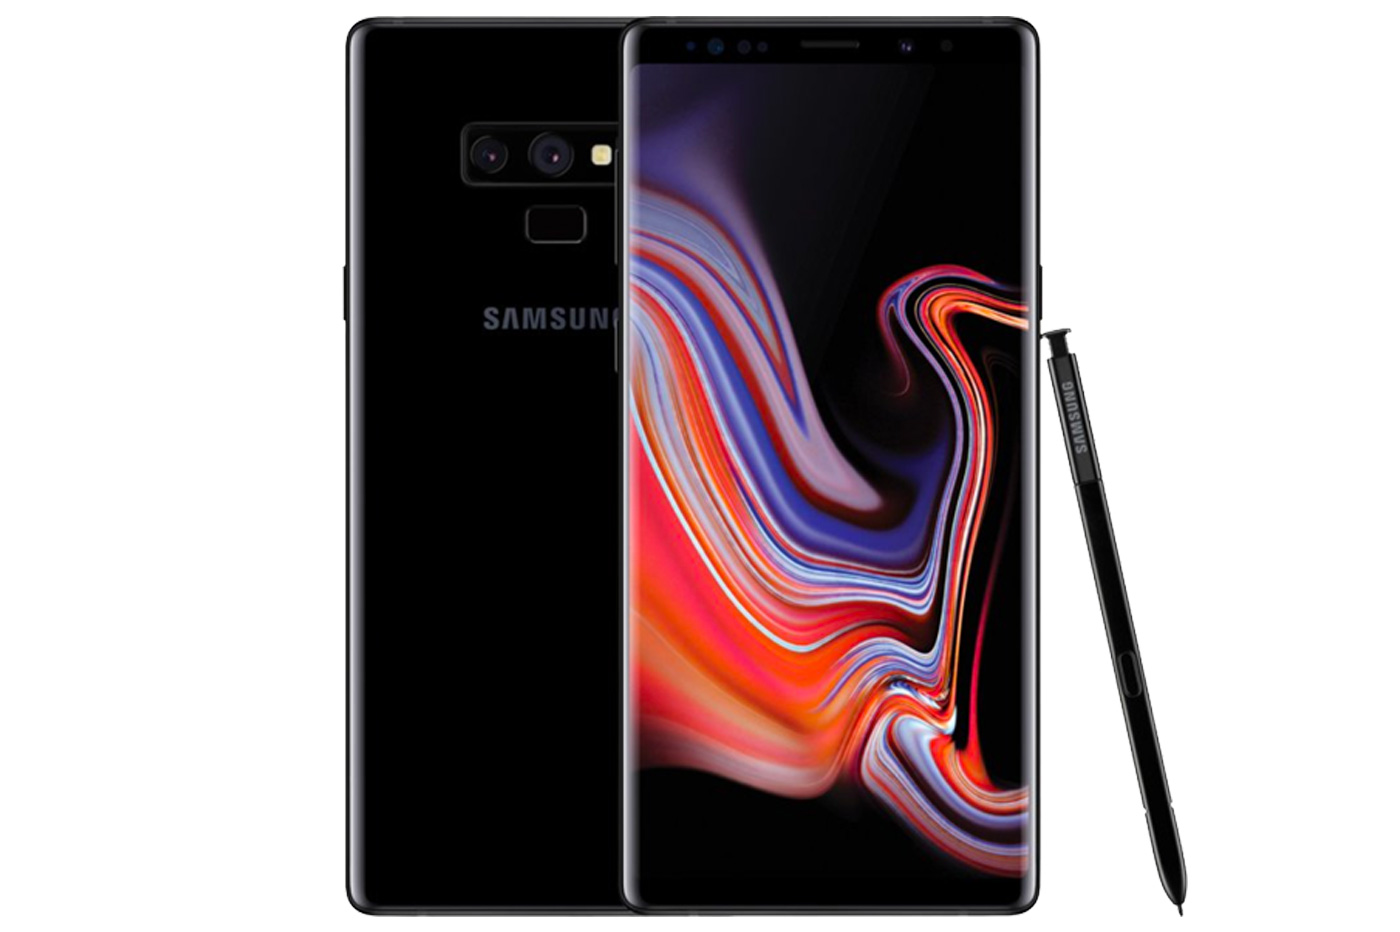 bon plan les samsung galaxy s9 et note 9 en vente priv e 50. Black Bedroom Furniture Sets. Home Design Ideas